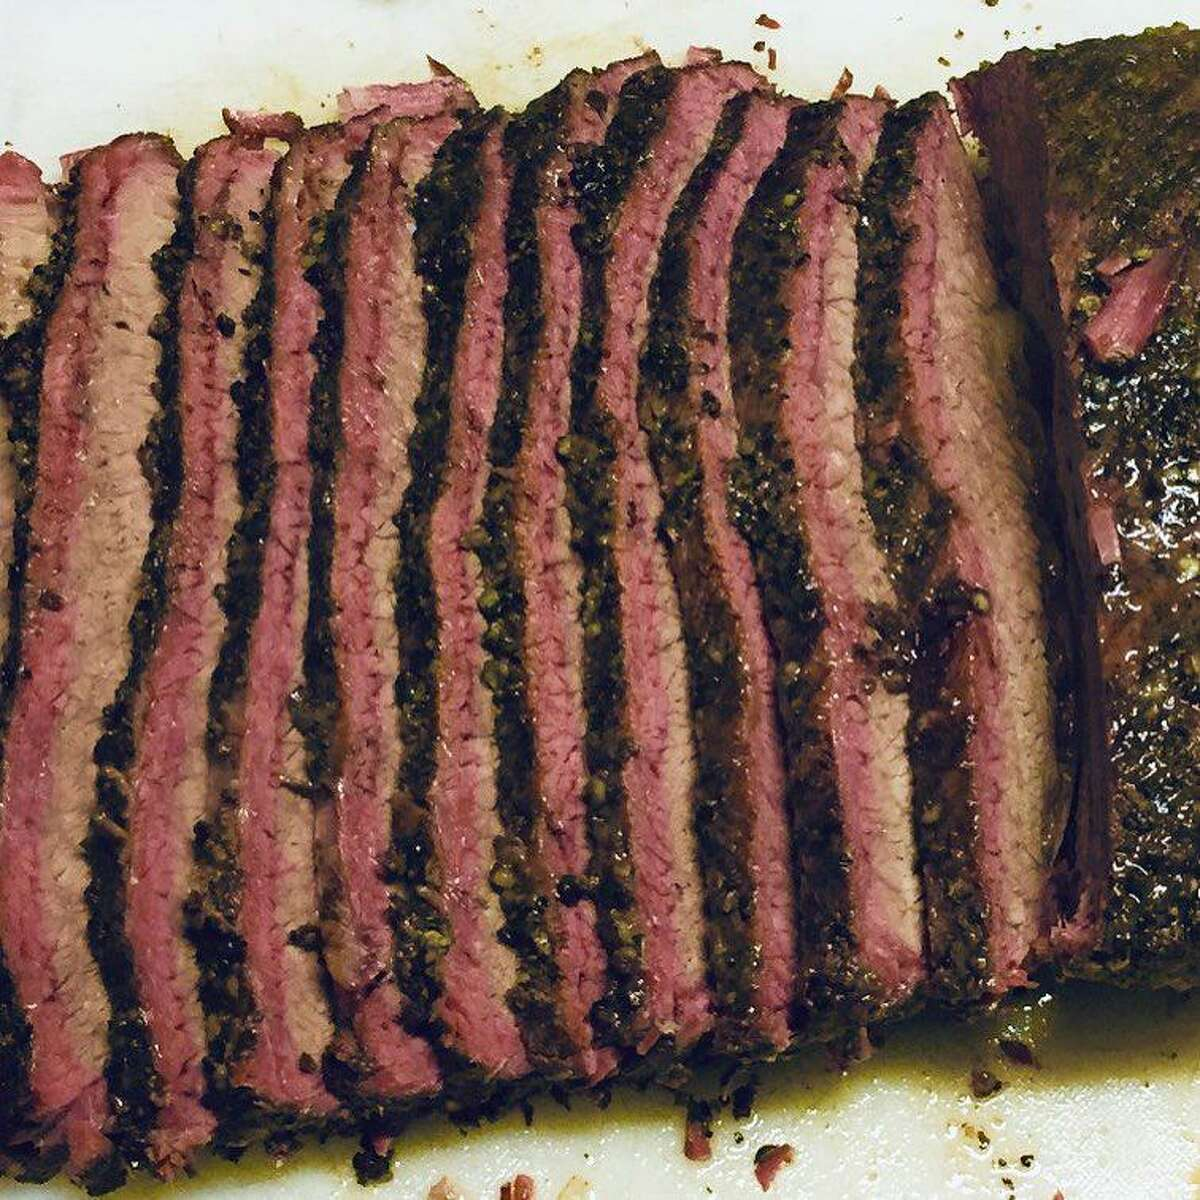 Fresh slices of brisket off the 1836 BBQ pit.